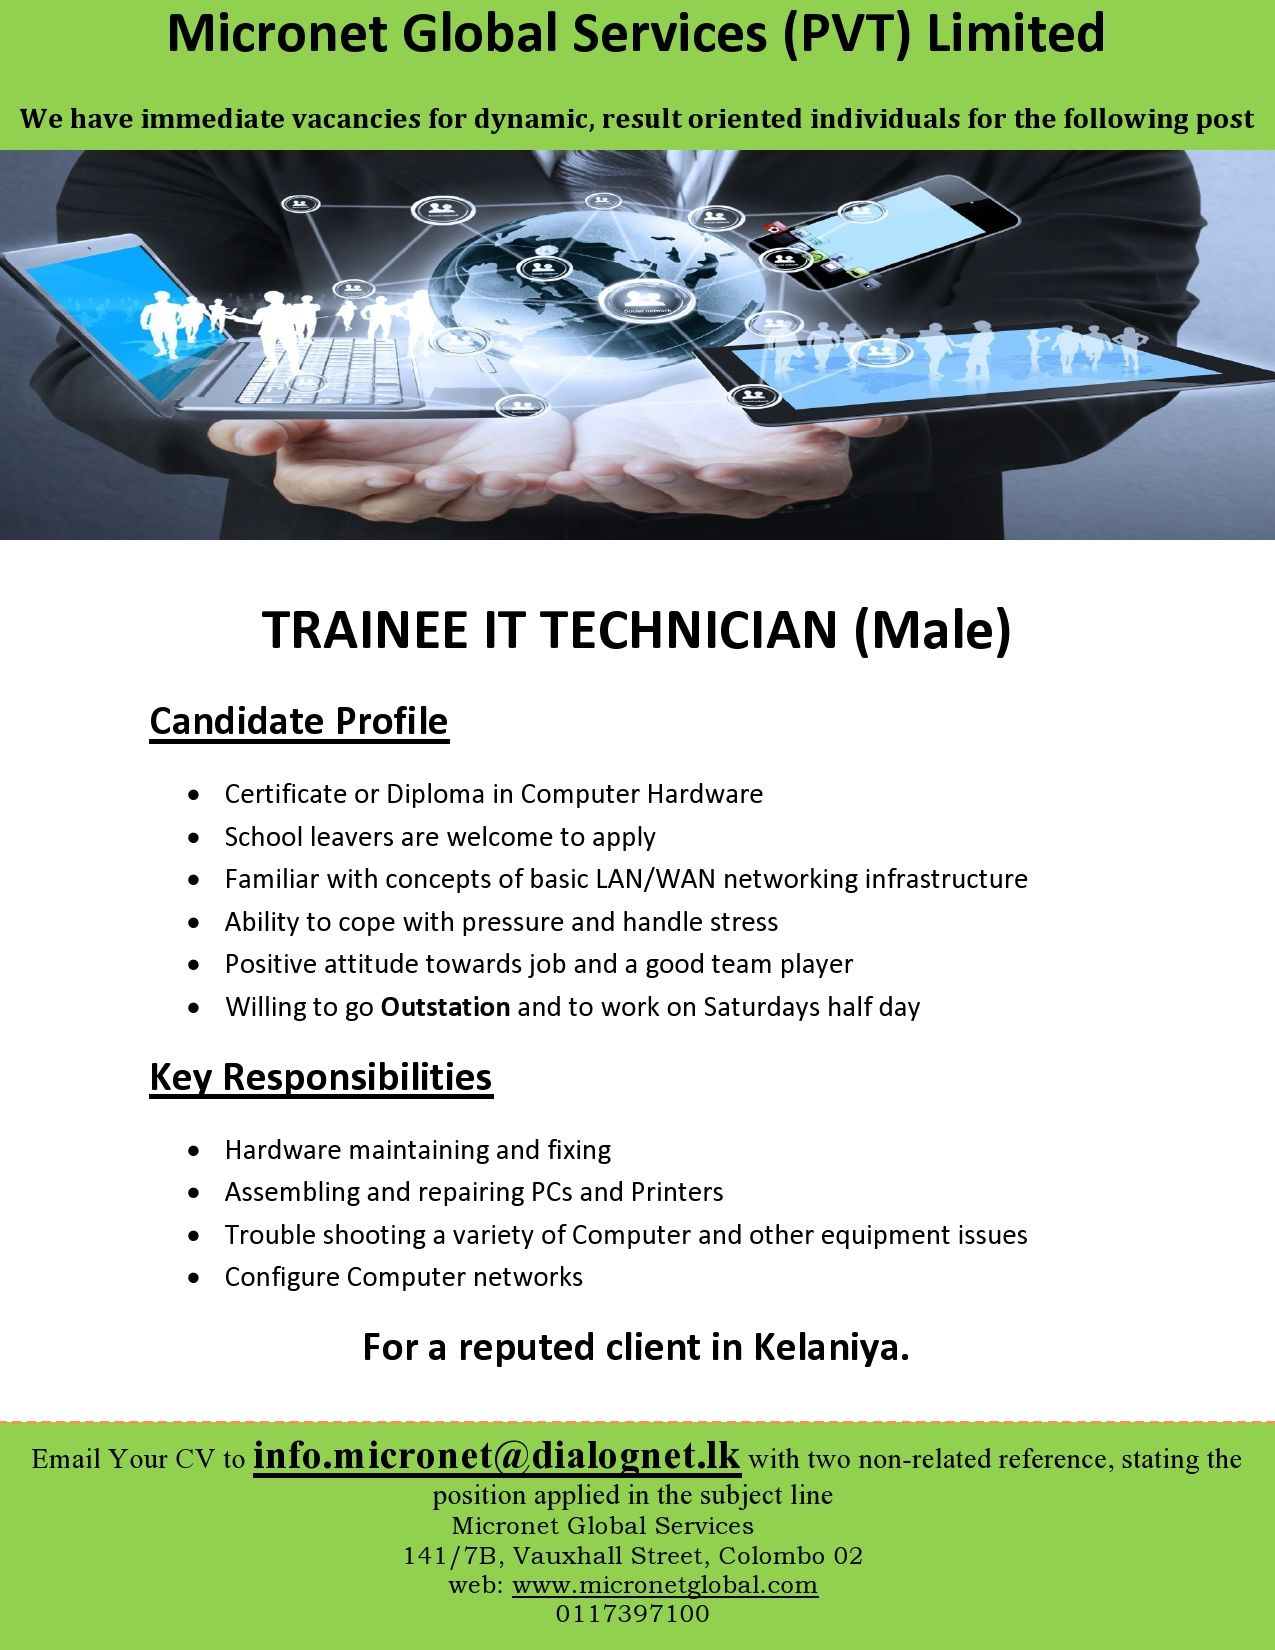 trainee it technician at micronet global services  pvt